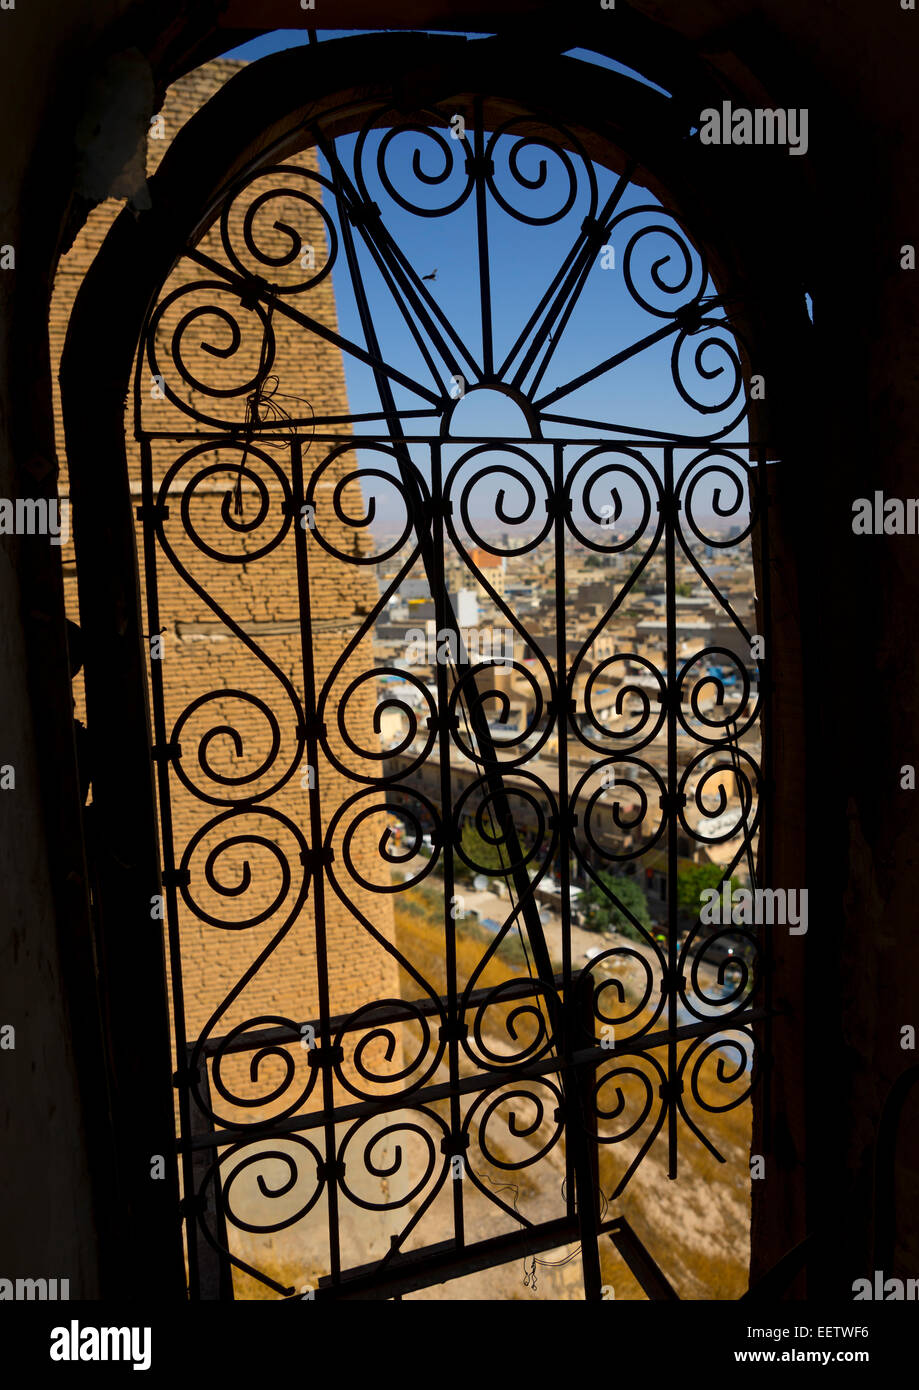 Wrought Iron Window In The Citadel, Erbil, Kurdistan, Iraq - Stock Image